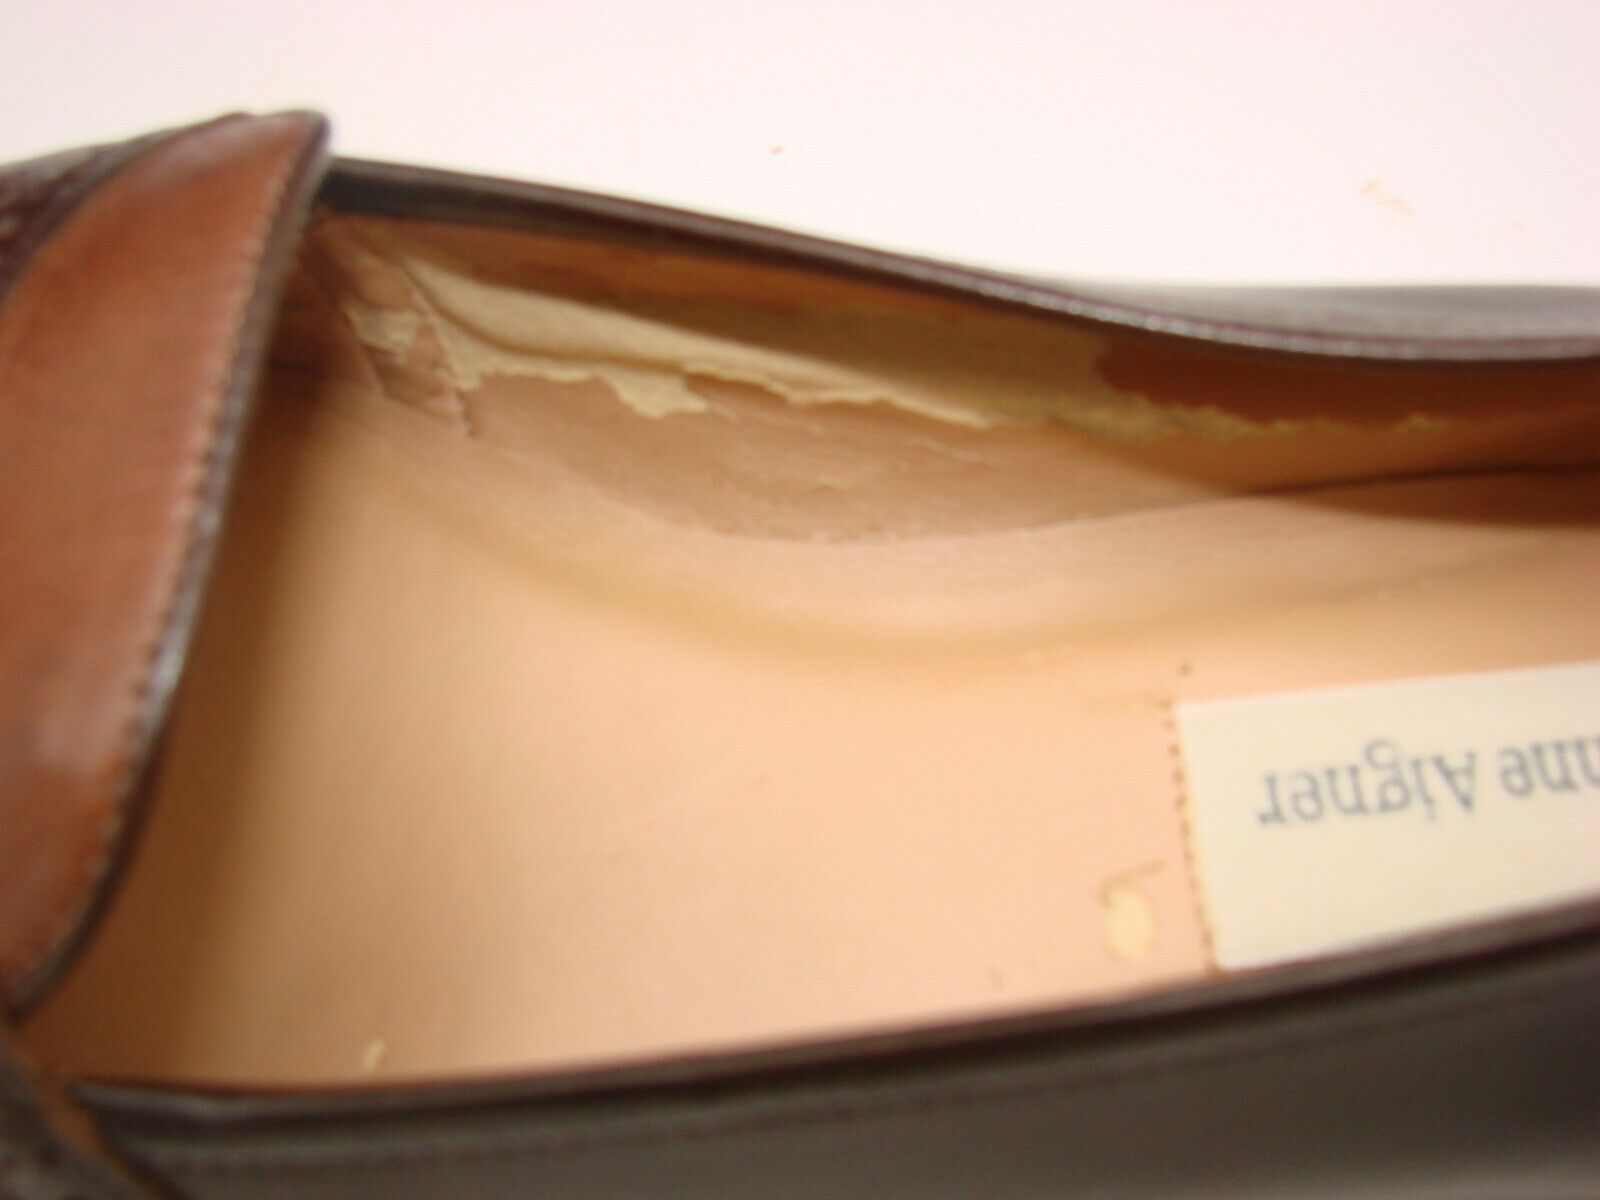 EUC Etienne Aigner Women's Two Tone  Slip on Loafer Casual, Career Size 81/2M image 2